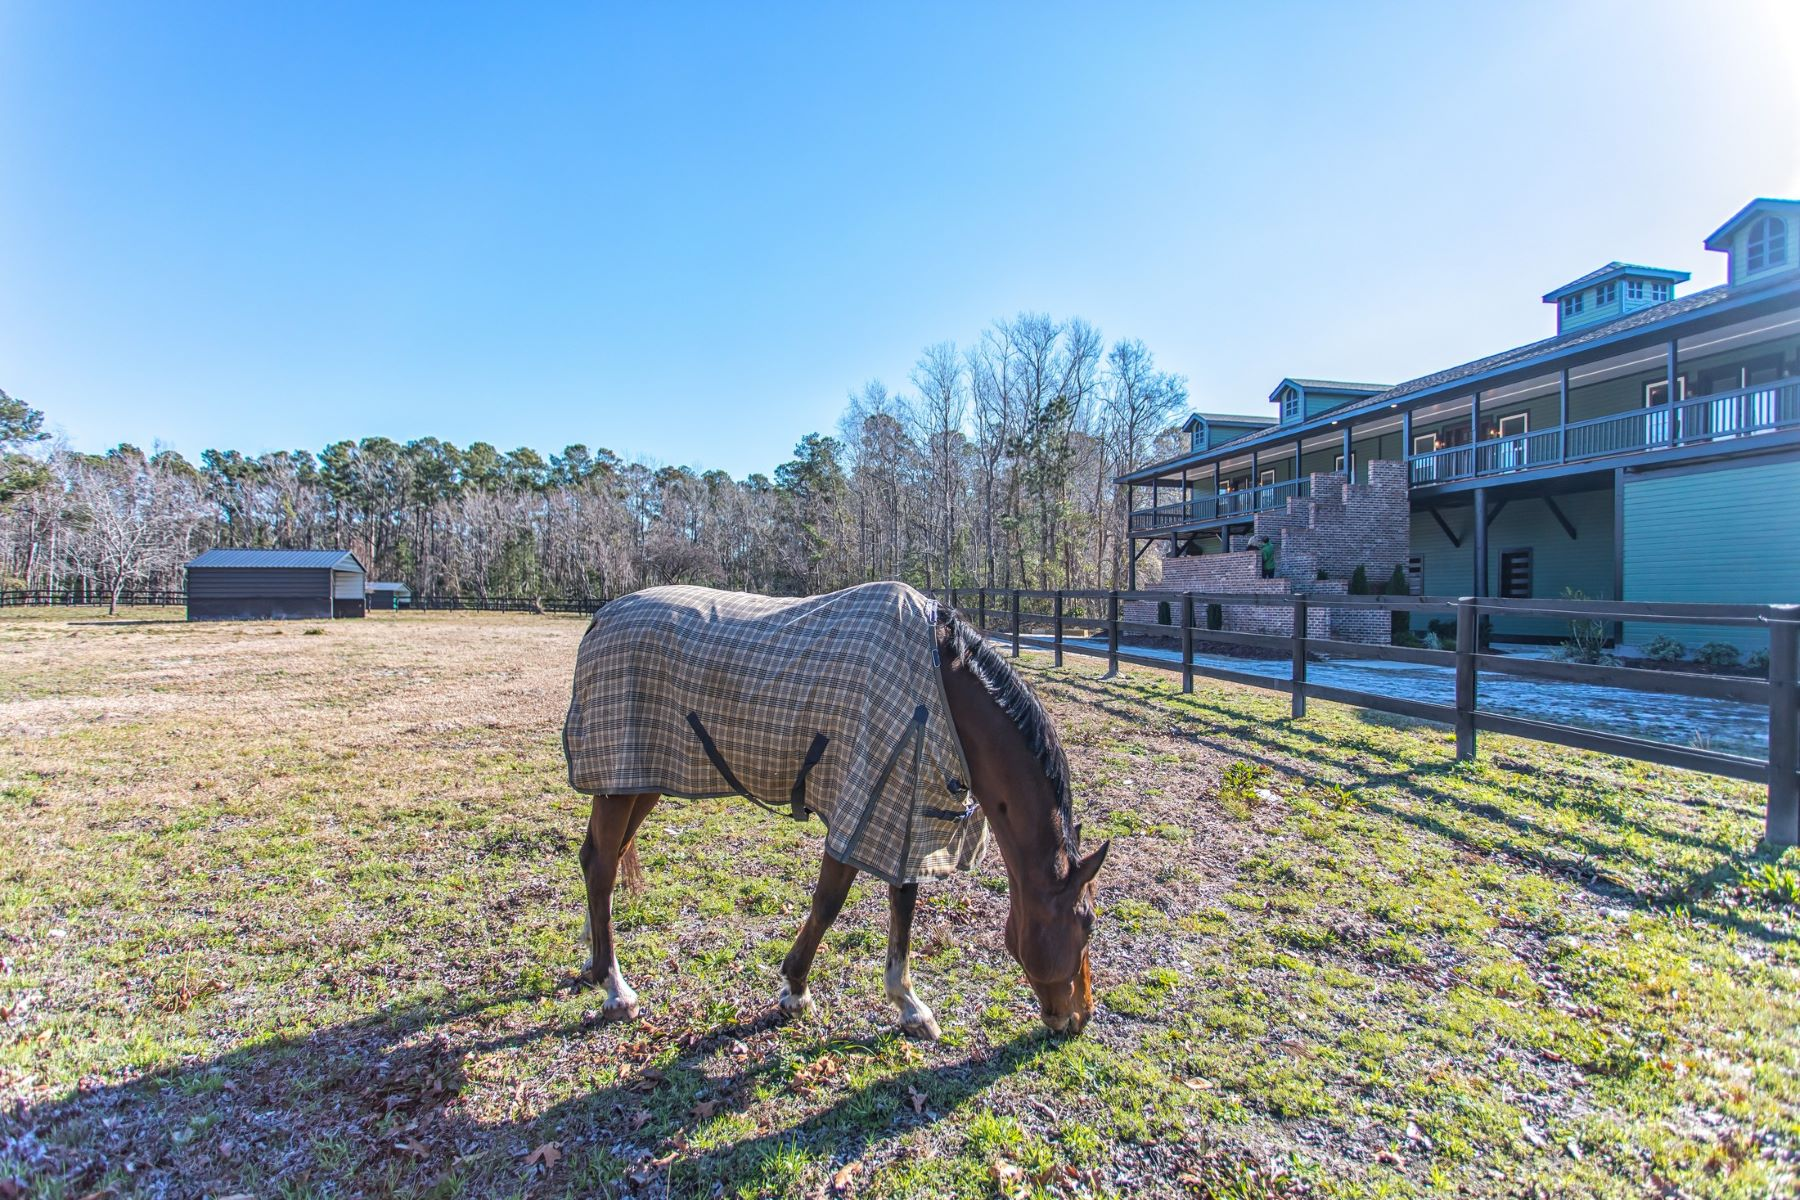 Single Family Homes for Active at Elegant Equestrian Property Near the Ocean 240 Green Bay Road NW Ocean Isle Beach, North Carolina 28469 United States